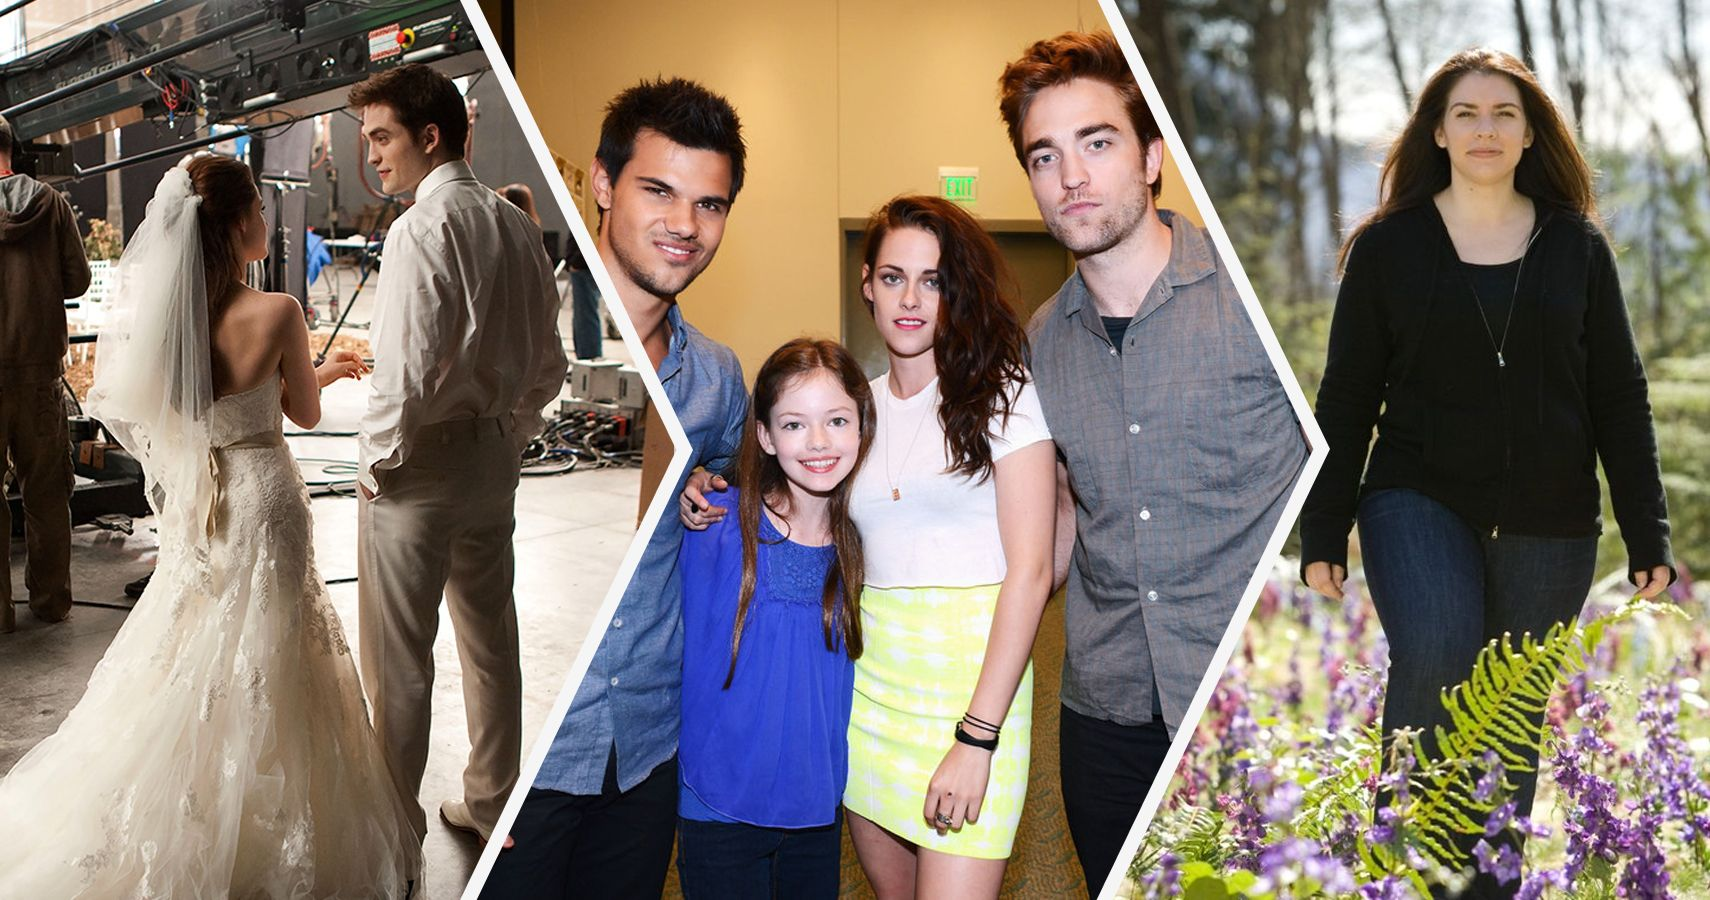 Twilight 20 Details Behind The Making Of The Breaking Dawn Movies